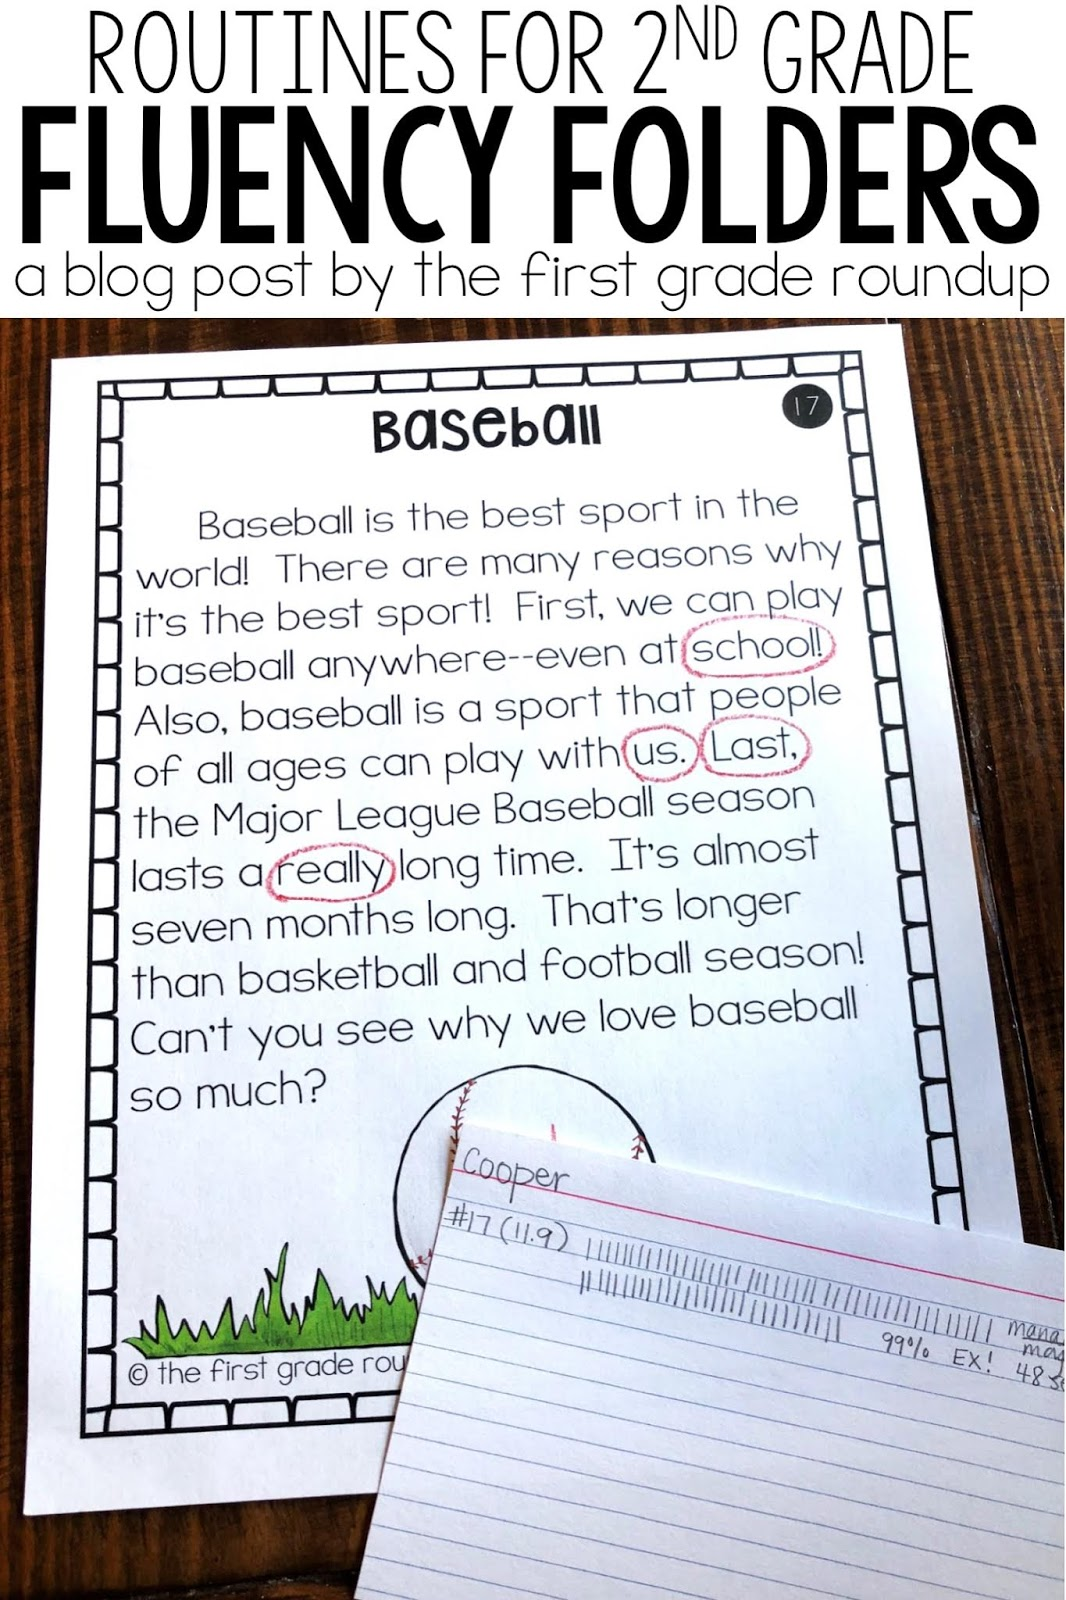 small resolution of Fluency Folder Routines for Second Graders - Firstgraderoundup